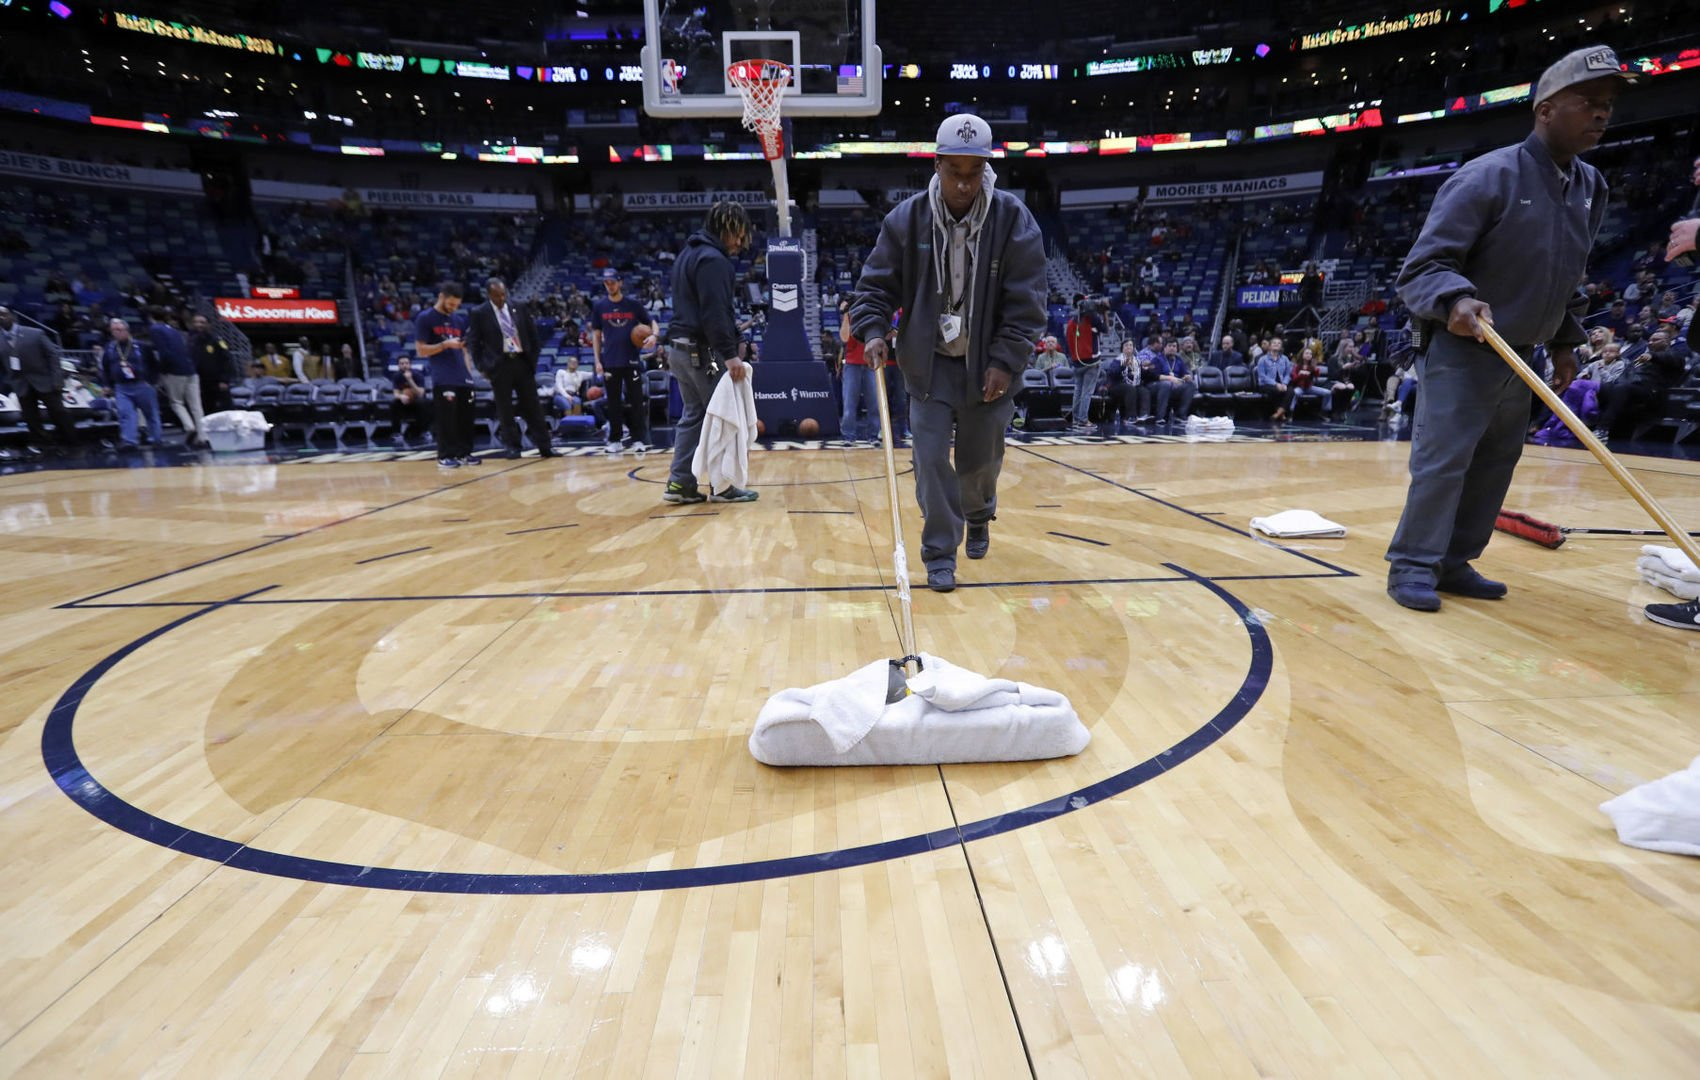 Rained out: Leaky roof forces National Basketball Association to postpone Pacers-Pelicans